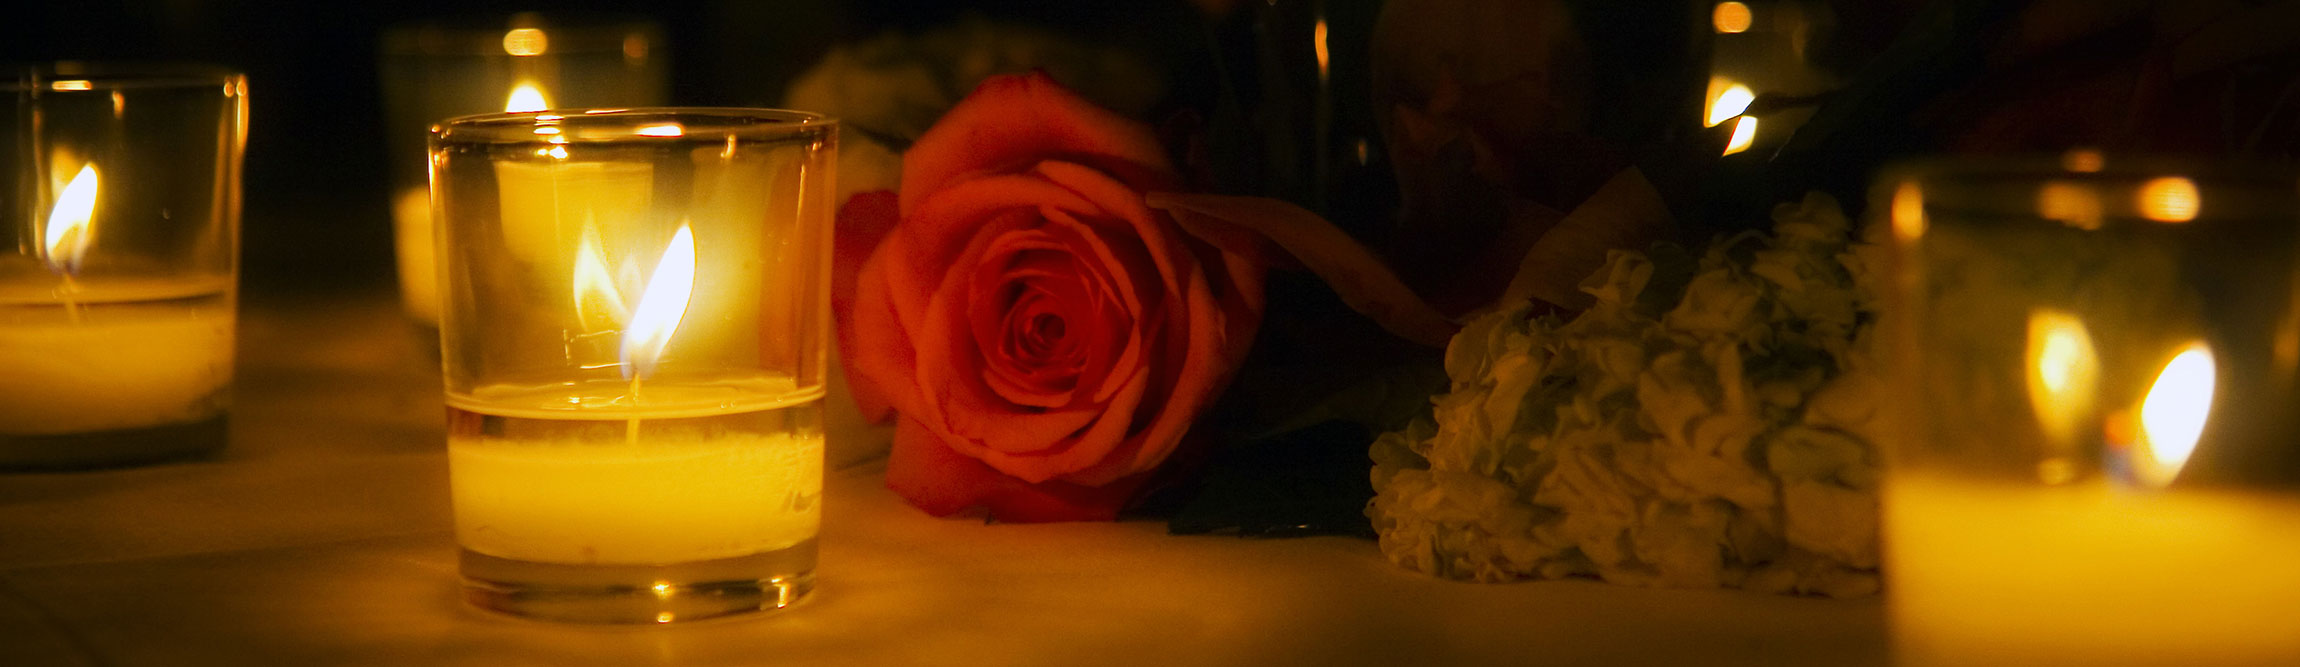 Romantic-scene-rose-and-candles